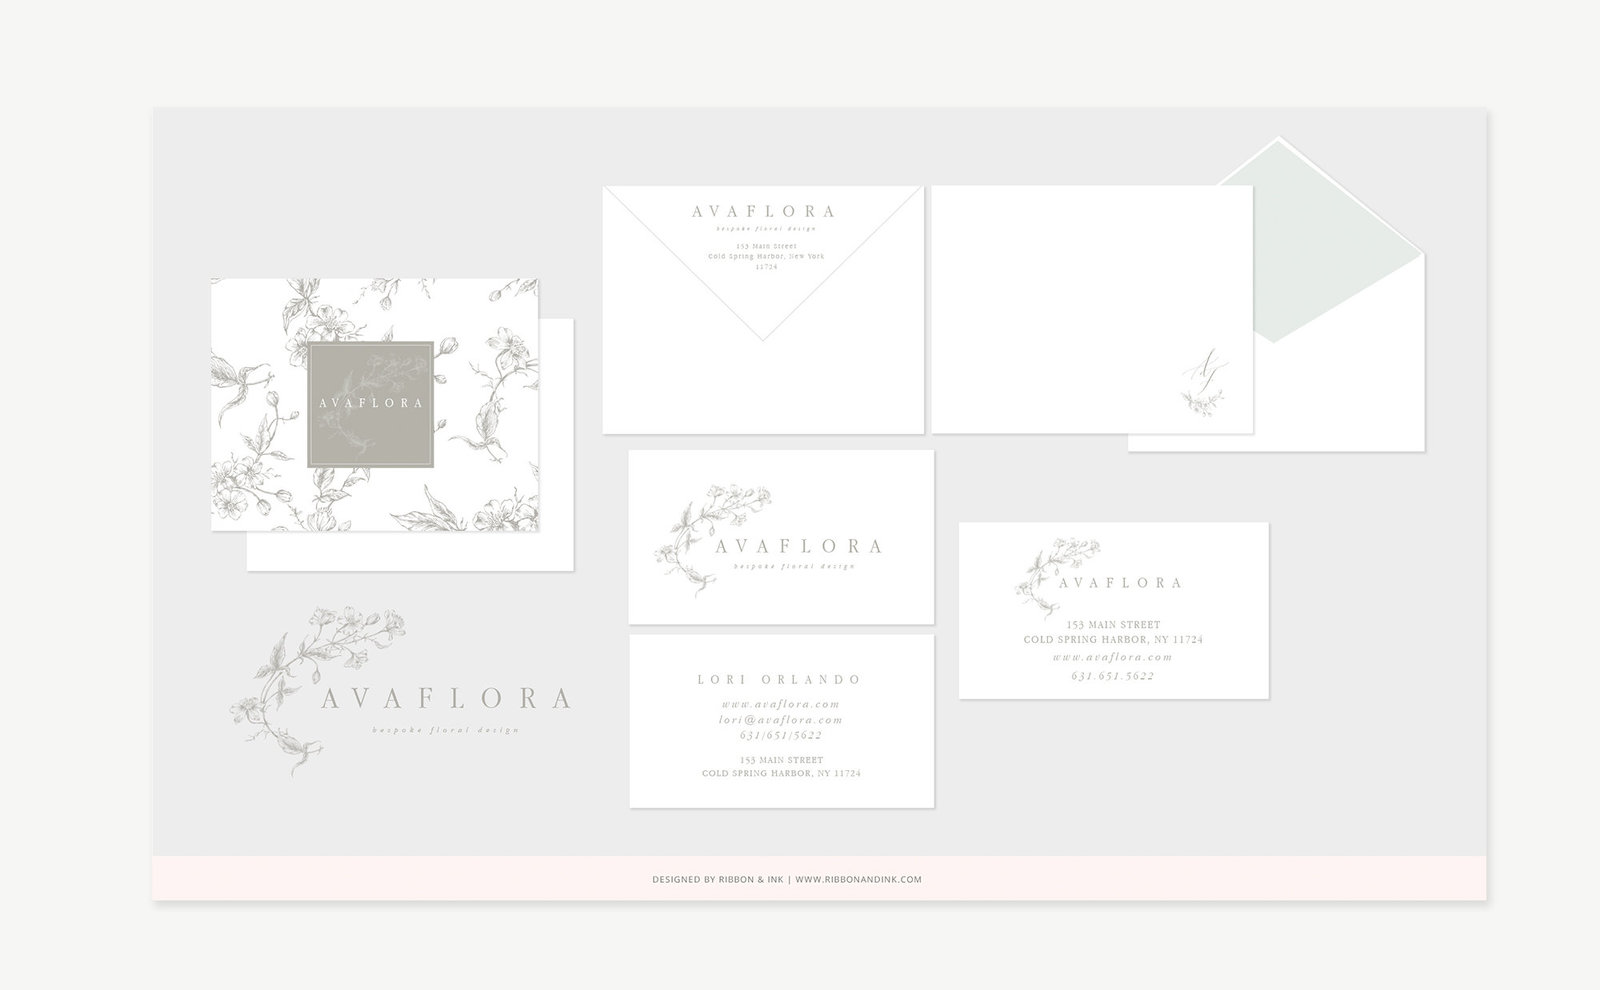 brand-design-florist-logo-branding-for-creatives-bespoke-floral-design-new-york-avaflora-stationery